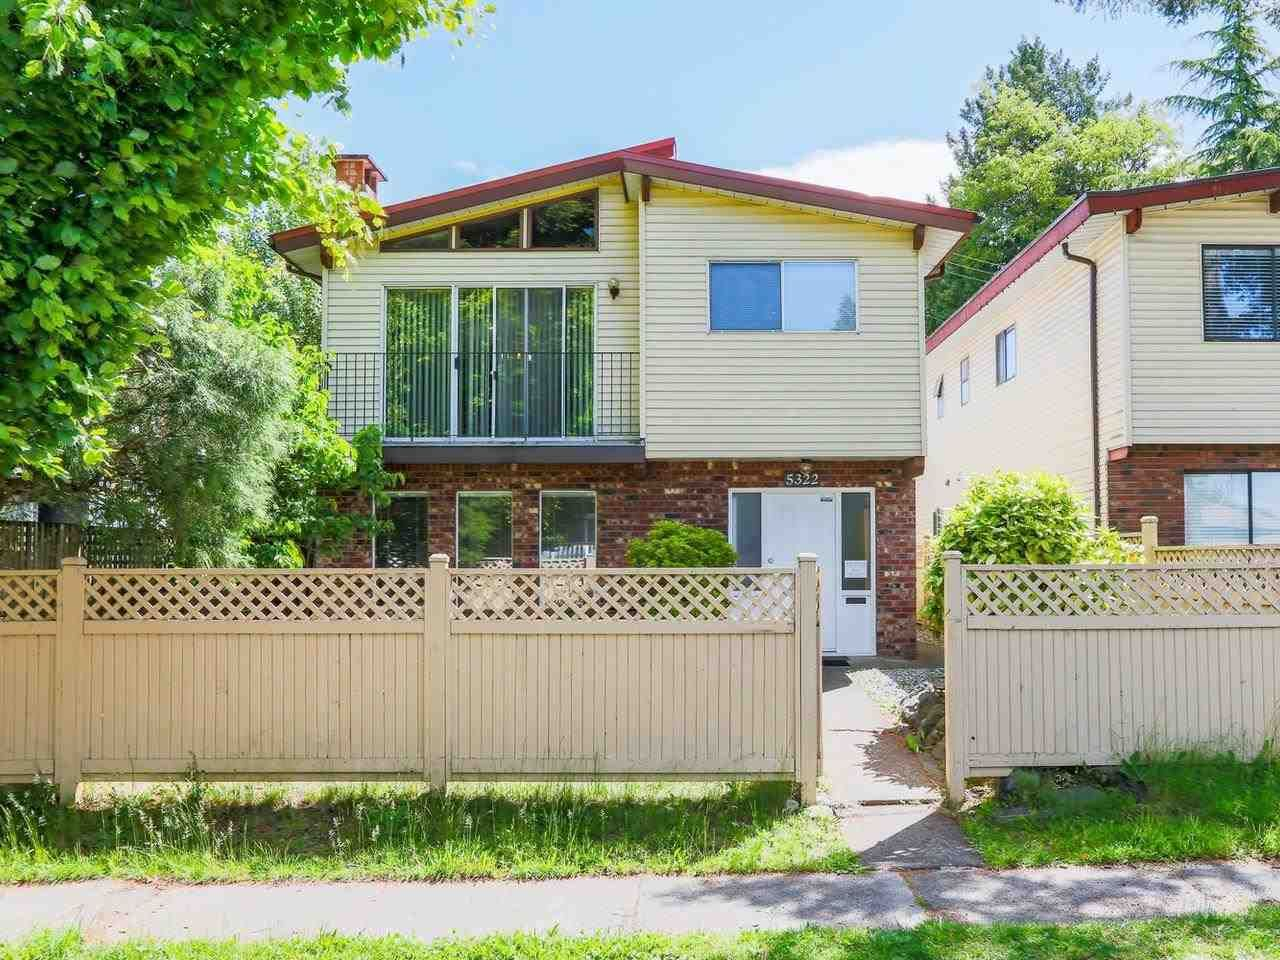 Main Photo: 5322 SHERBROOKE Street in Vancouver: Knight House for sale (Vancouver East)  : MLS®# R2588172